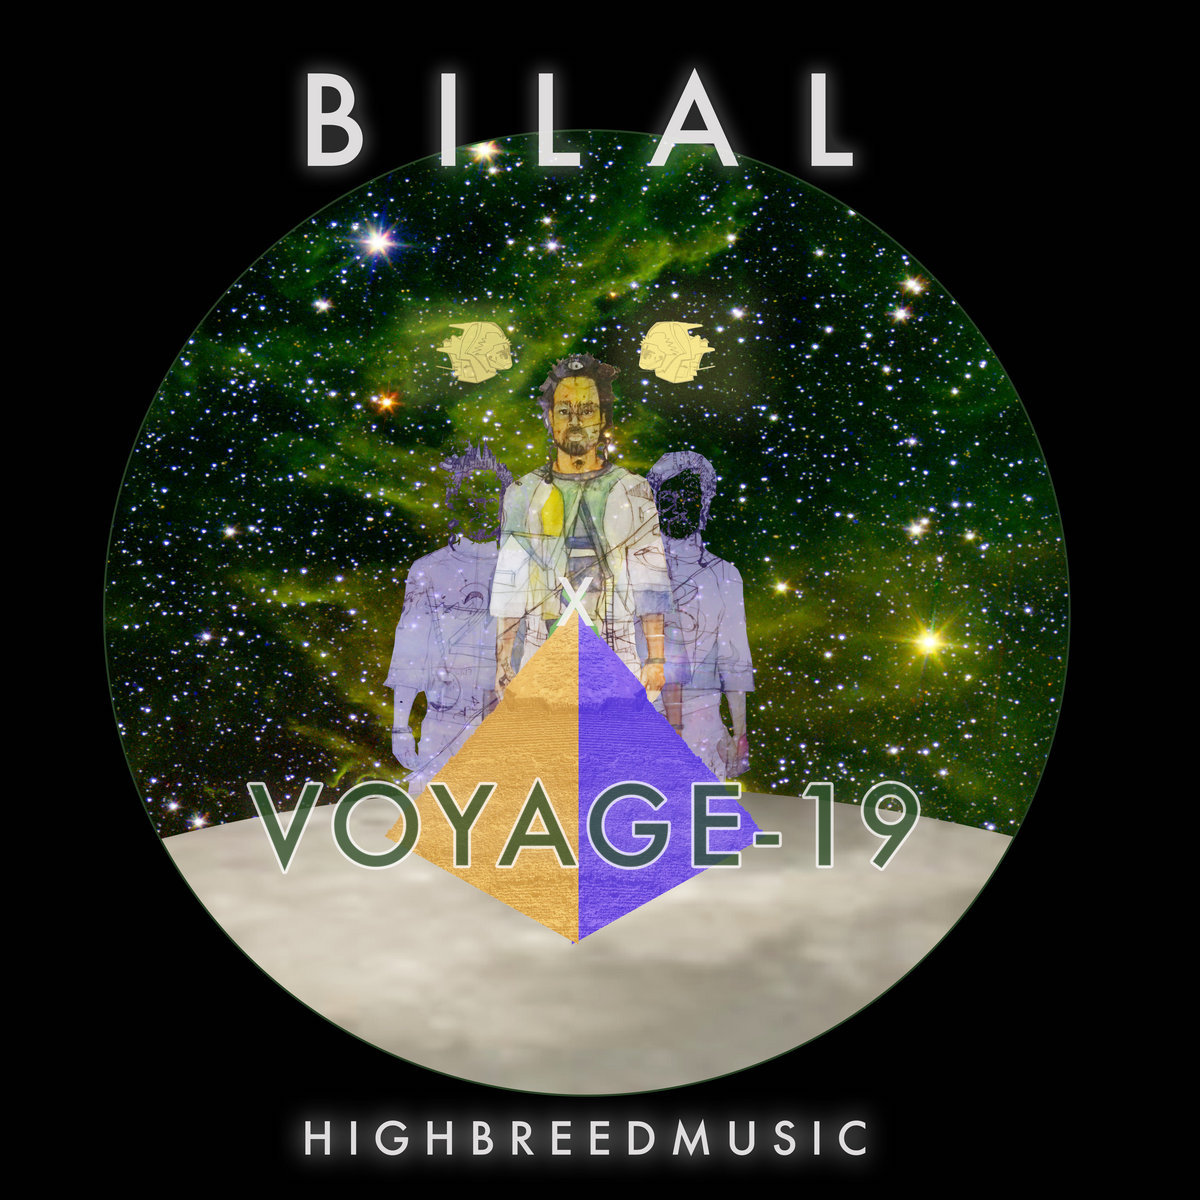 bilal voyage 19 album cover artwork Bilal Releases New Star Studded Album VOYAGE 19: Stream